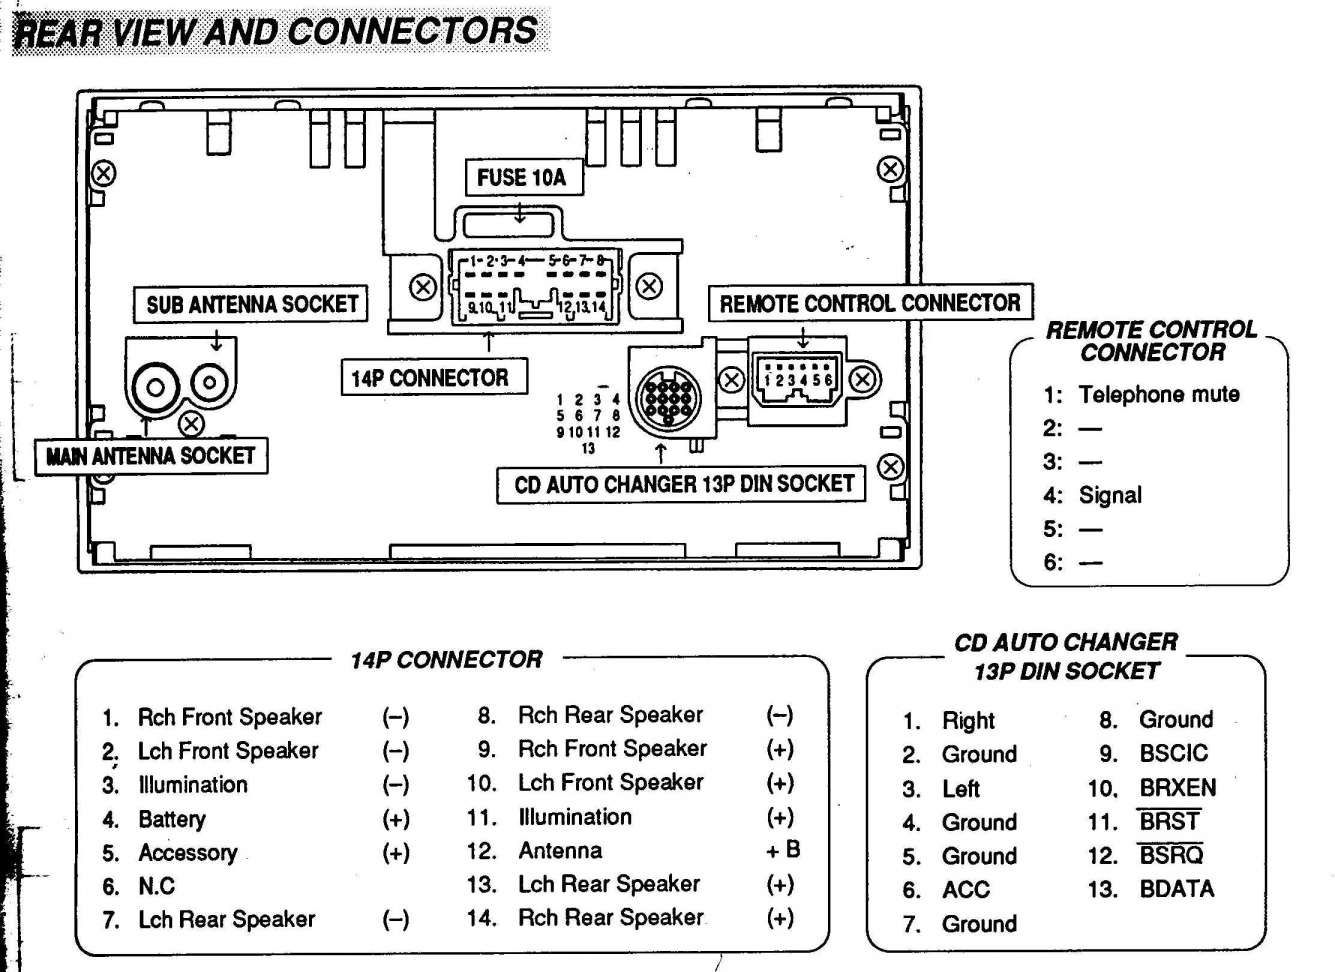 16 Mitsubishi Car Radio Wiring Diagram Car Diagram Mitsubishi Electric Car Subwoofer Wiring Mitsubishi Cars